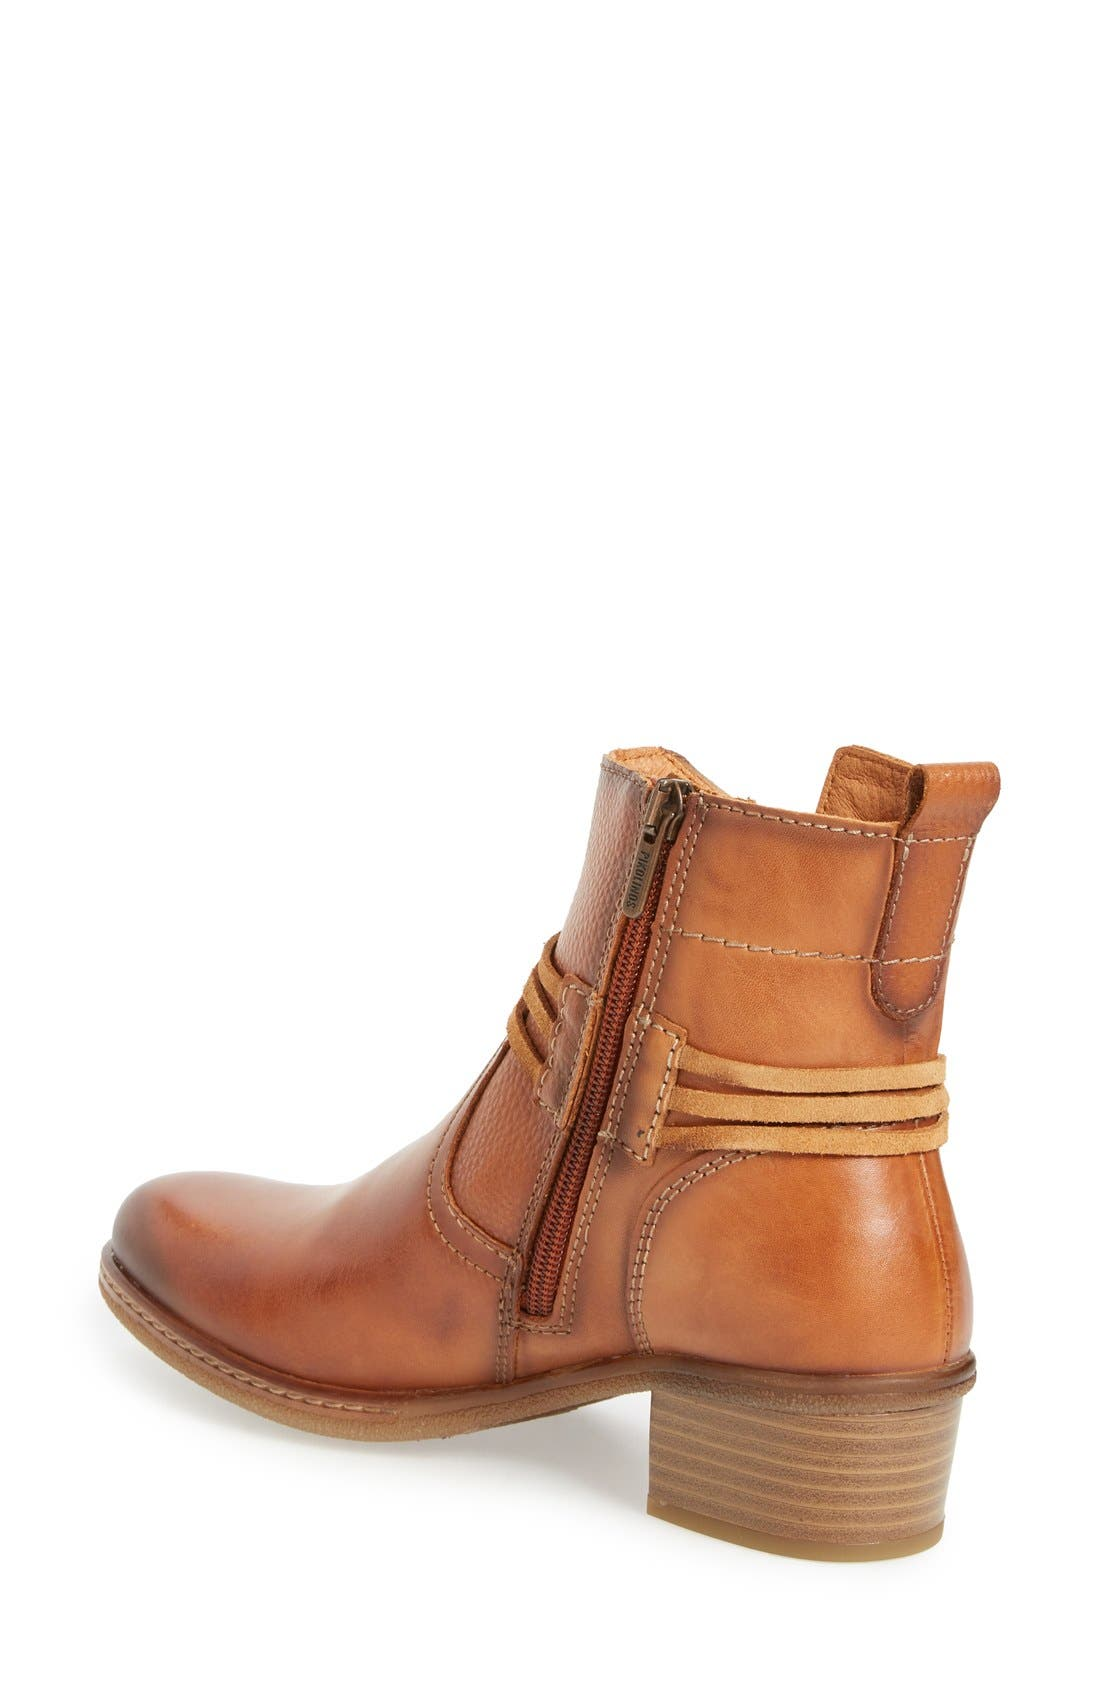 'Zaragoza' Bootie,                             Alternate thumbnail 4, color,                             BRANDY LEATHER